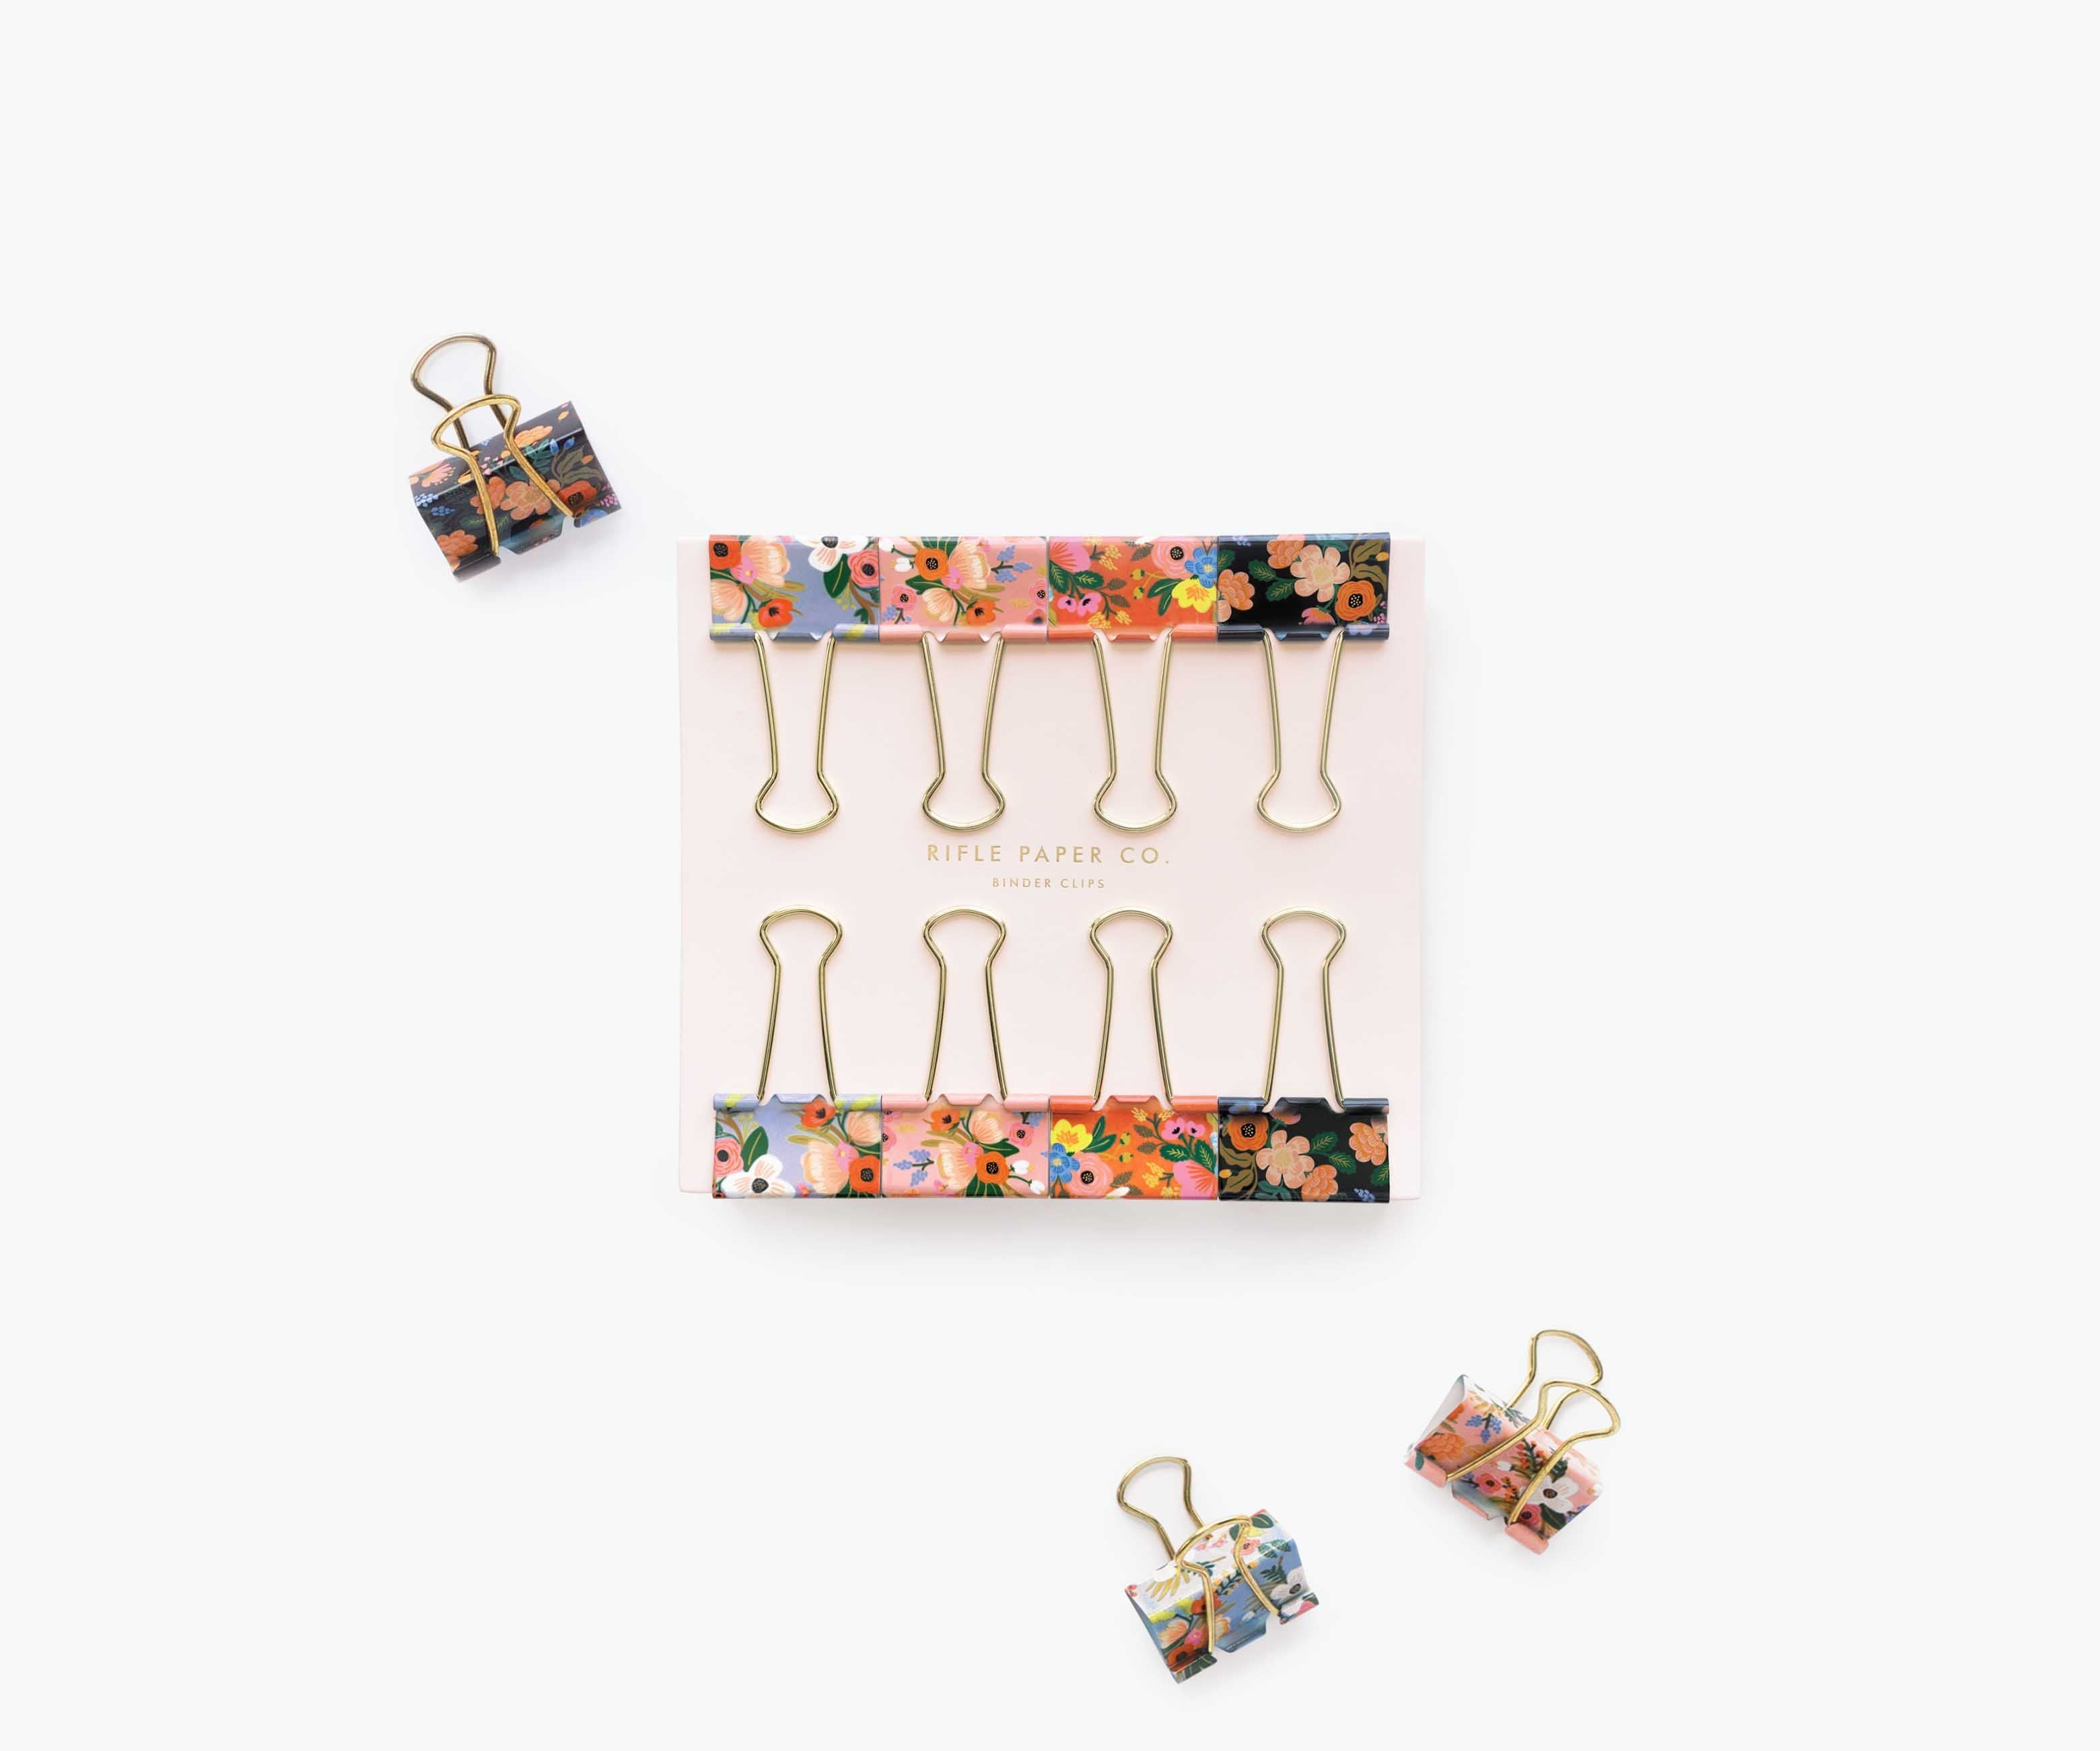 Lively Floral Binder Clips, Rifle Paper Co.